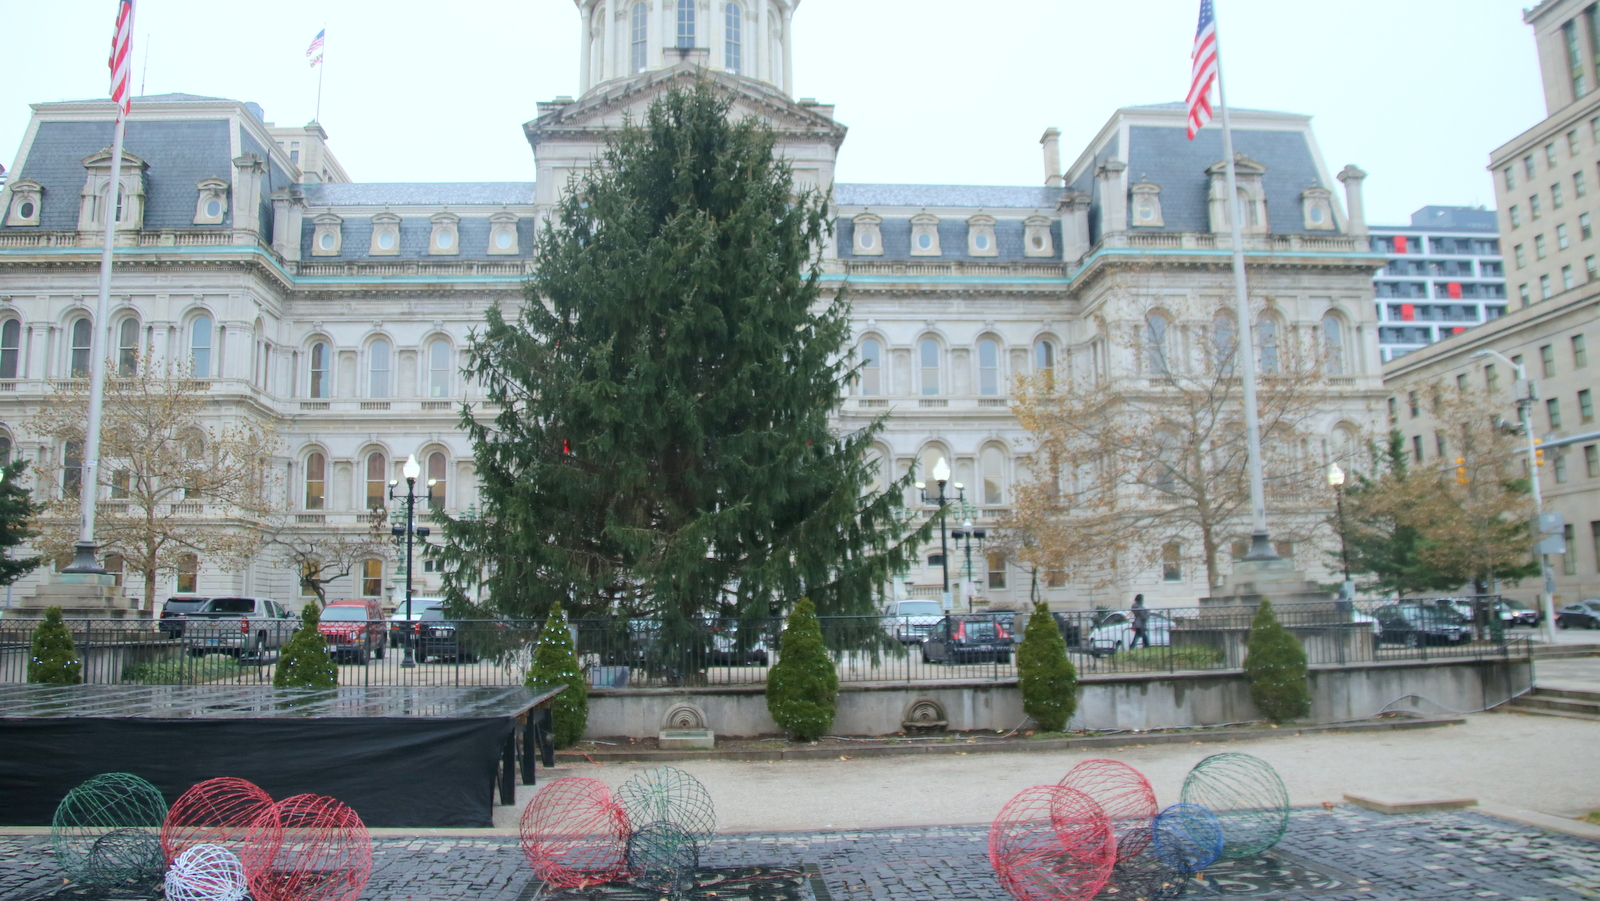 The Christmas tree Mayor Catherine Pugh will be lighting in a ceremony Monday was cut down from a city park. (Fern Shen)